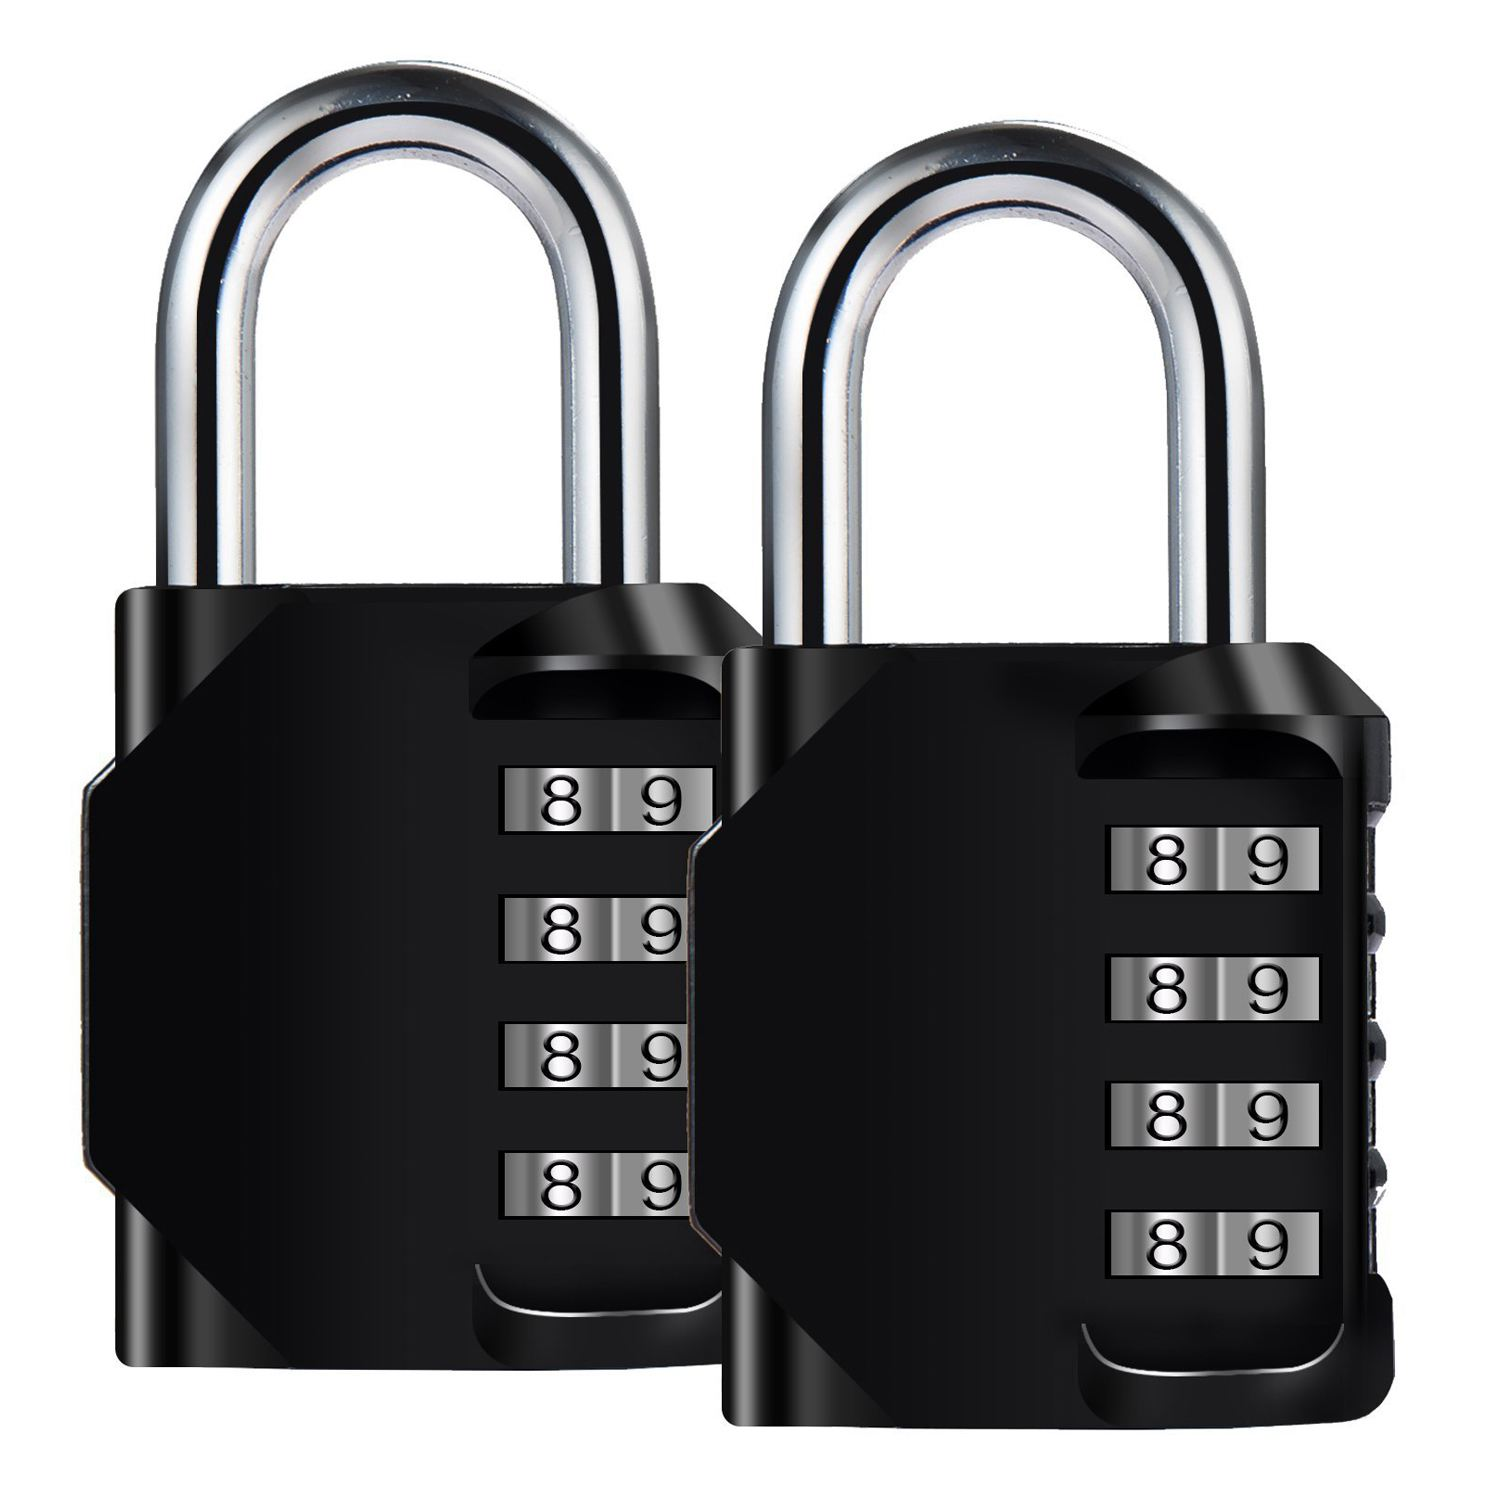 MOOL 2 Pack 4-Digit Waterproof and rustproof lock zincl alloy and steel clasp for school sports locker storage case - blackMOOL 2 Pack 4-Digit Waterproof and rustproof lock zincl alloy and steel clasp for school sports locker storage case - black